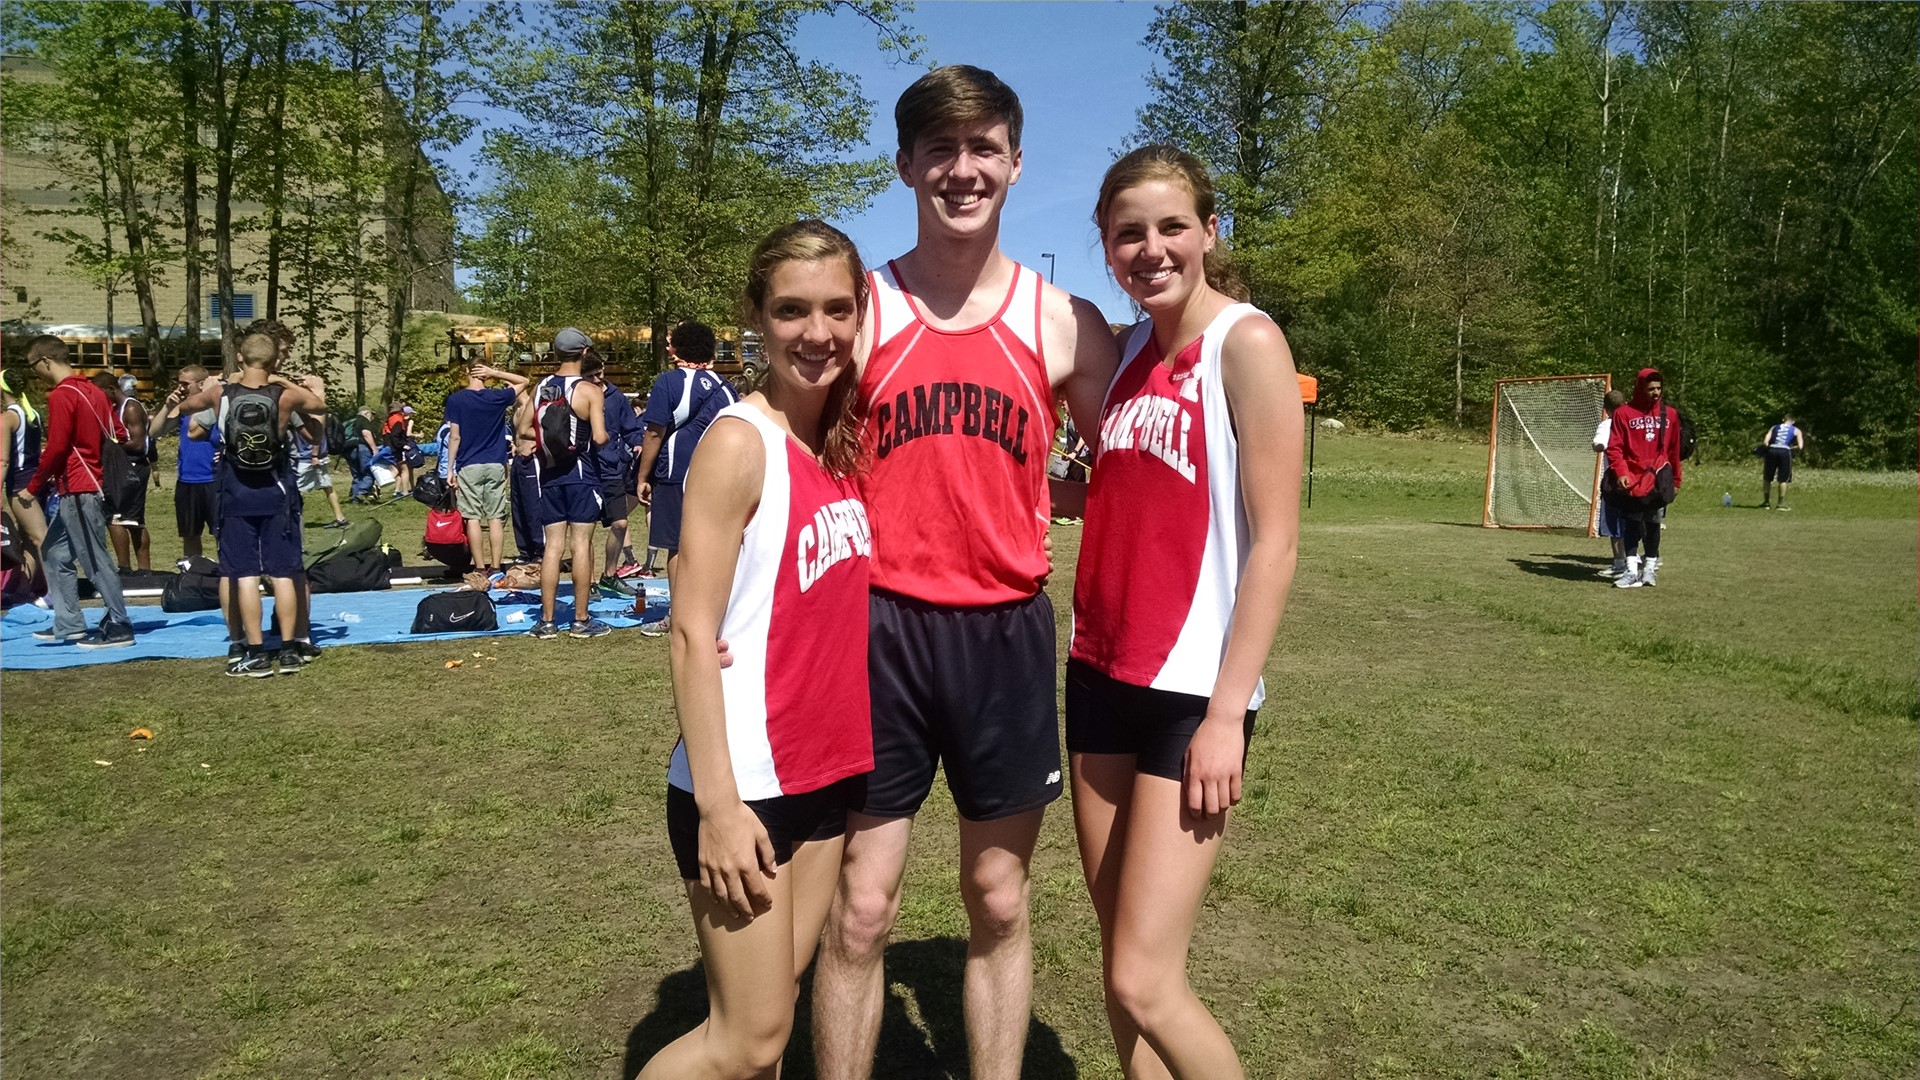 Congratulations to Callinan, Allen, and Molinari on breaking records this week!